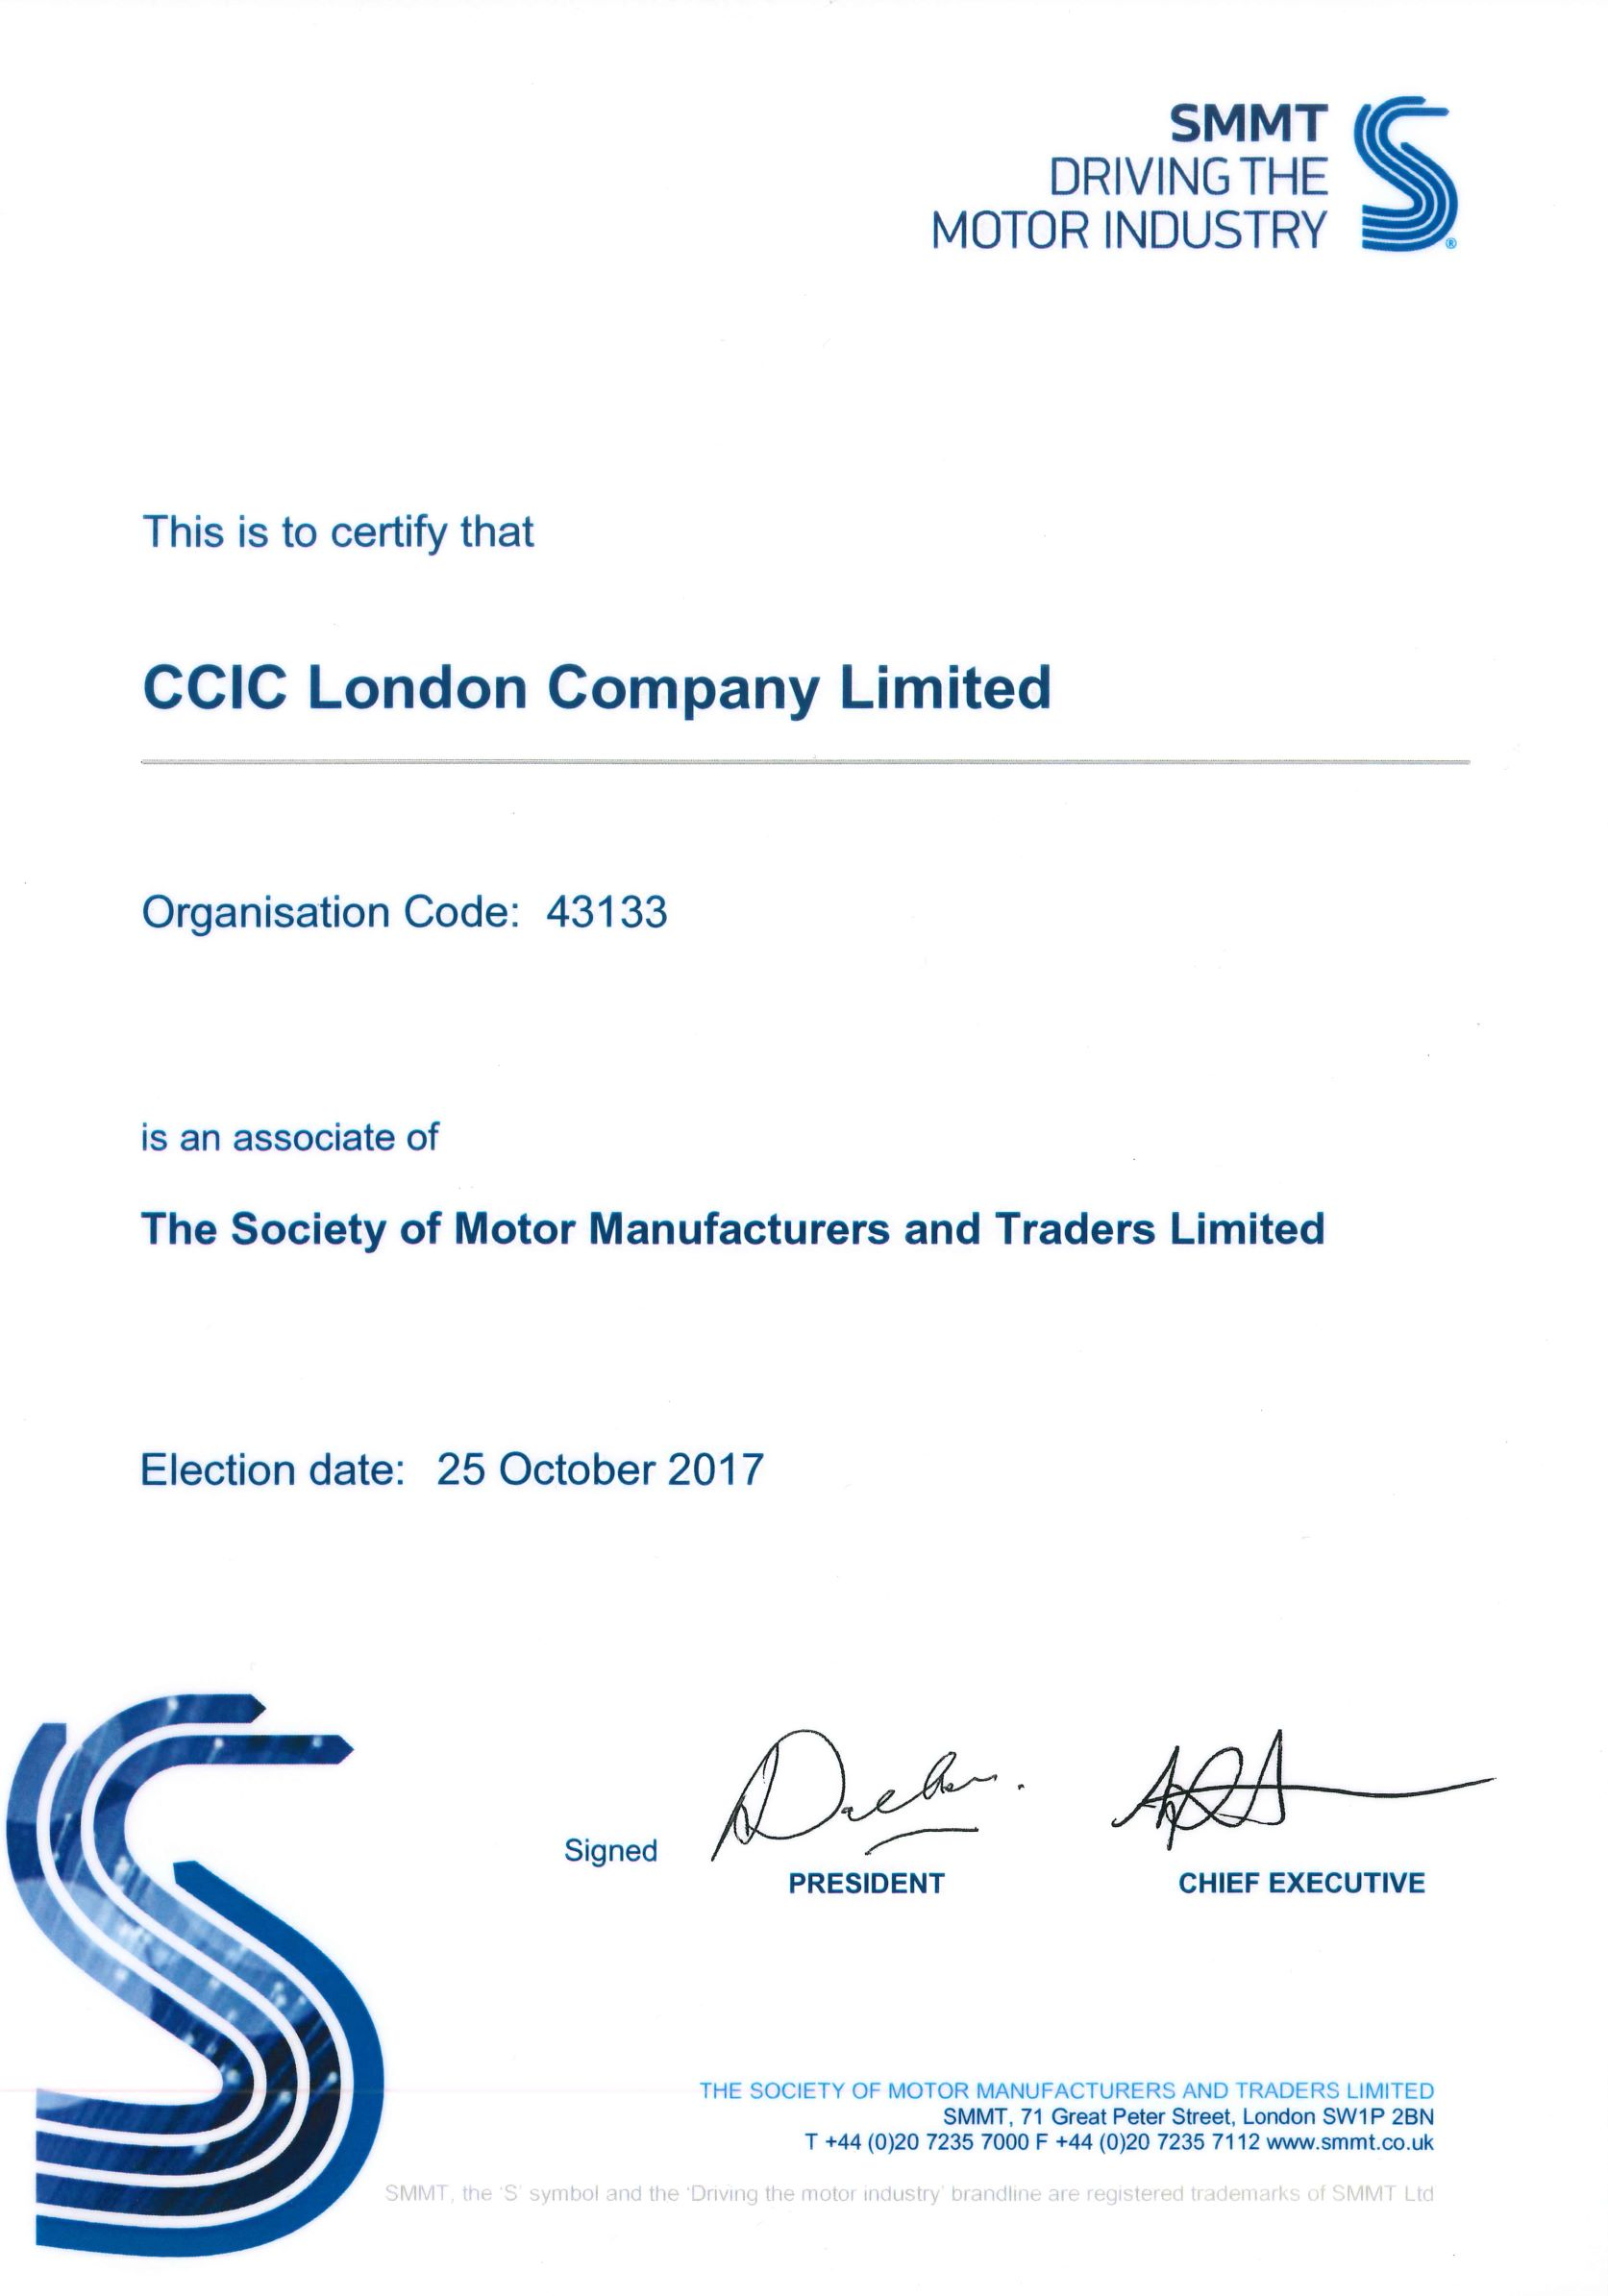 Company Qualifications CCIC London Company Limited